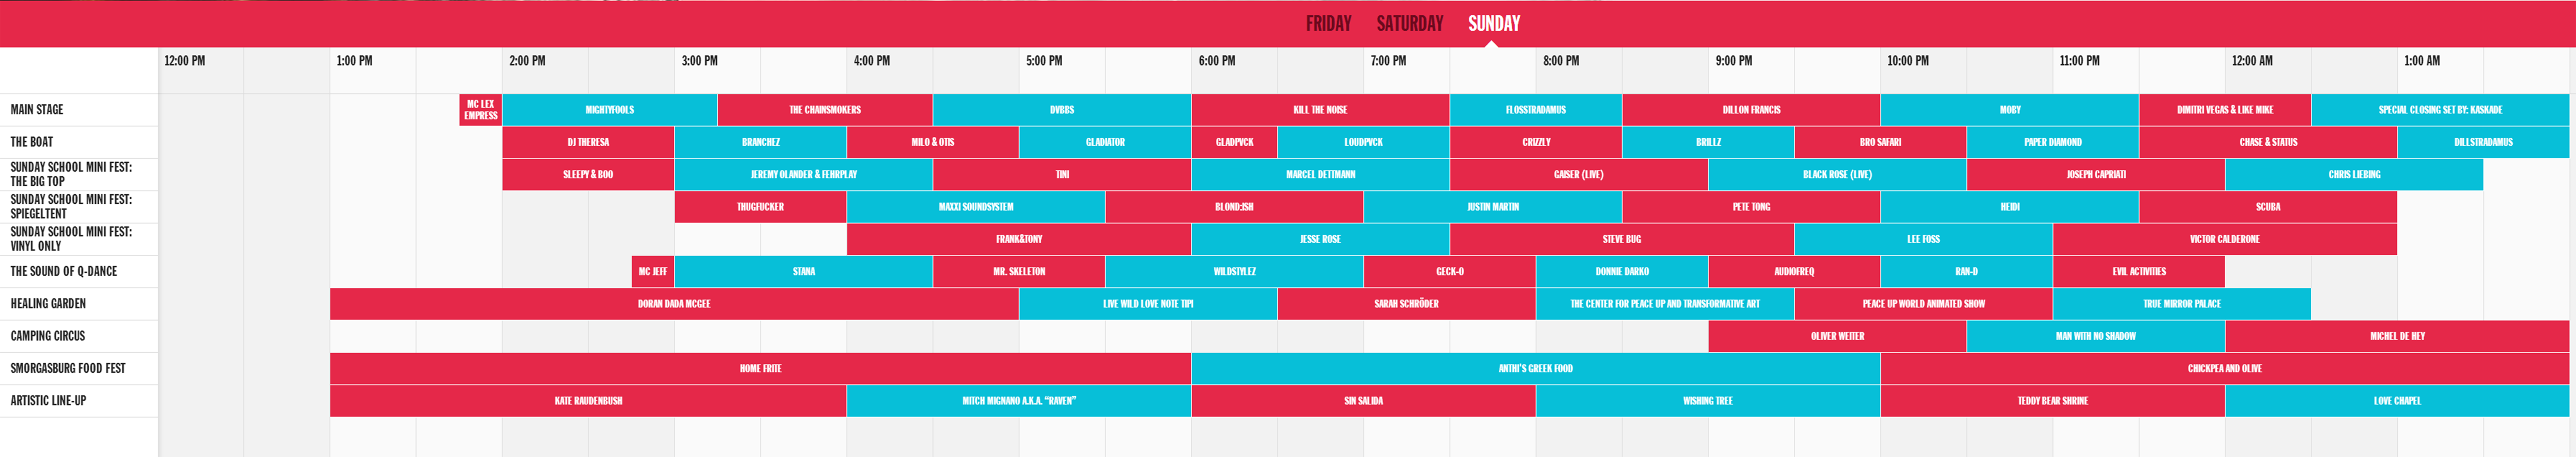 Mysteryland Sunday Set Times